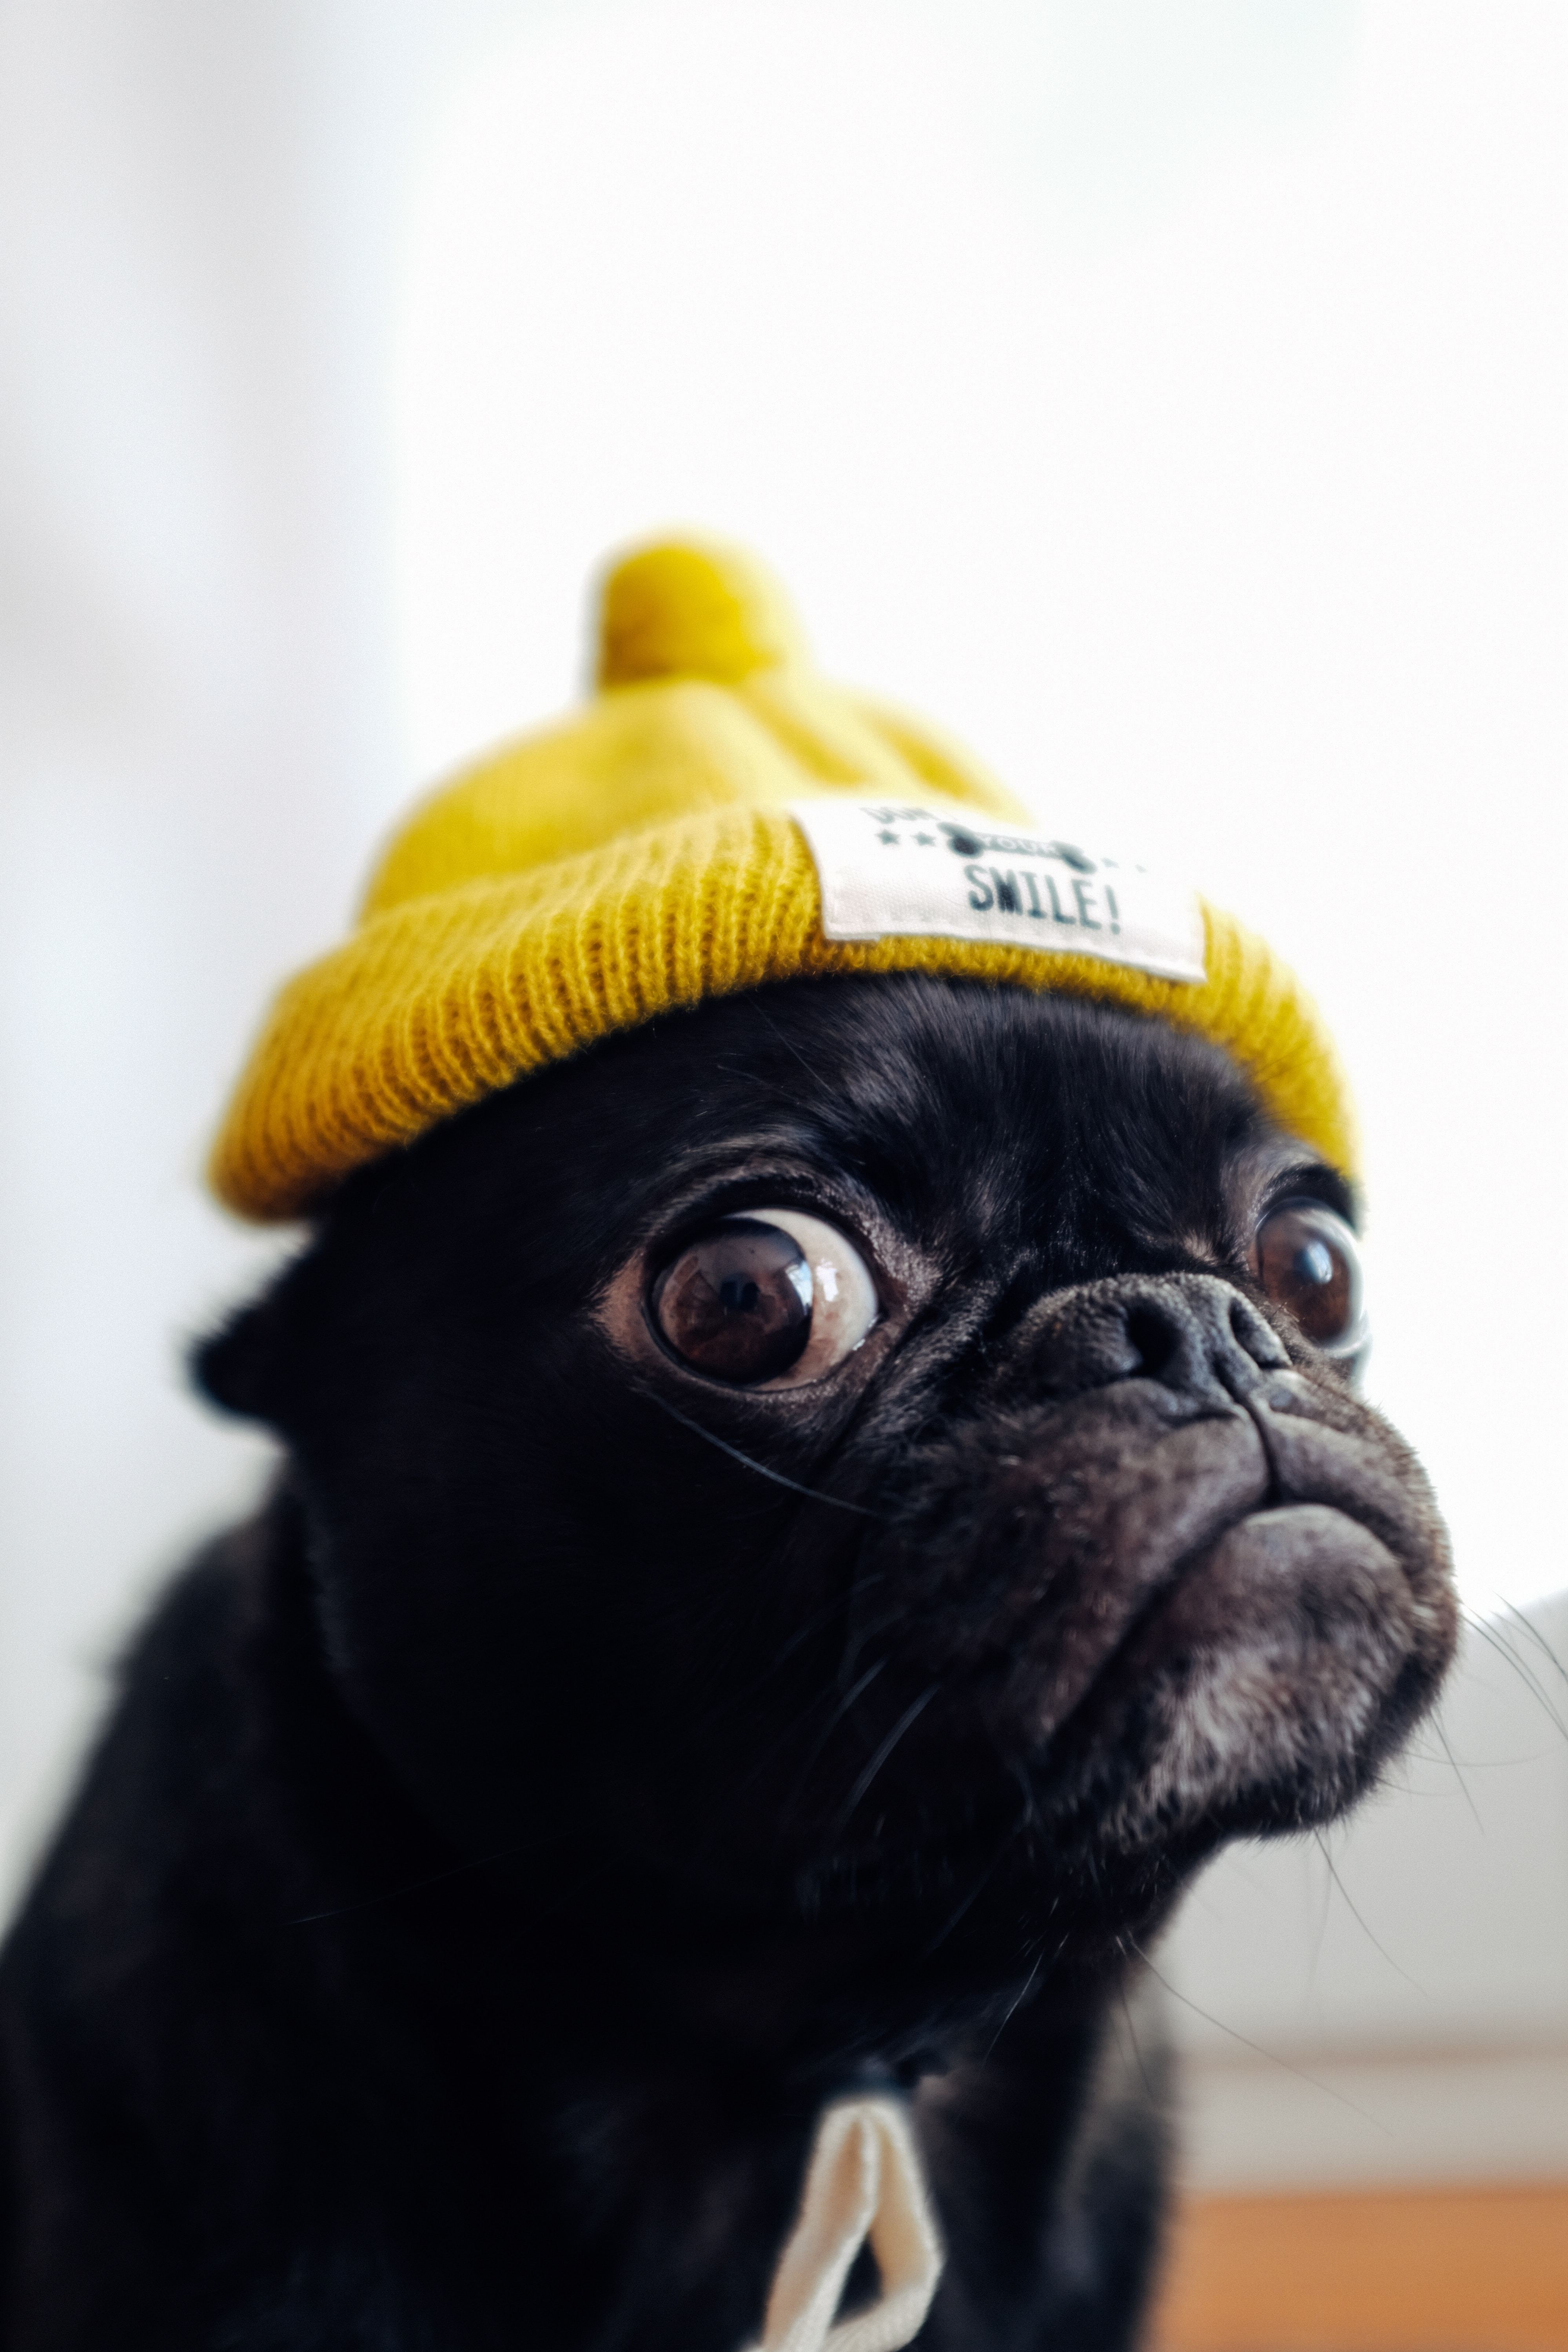 Free wallpaper 74280: Animals, Pug, Dog, Cap, Funny, Pet download pictures for cellphone